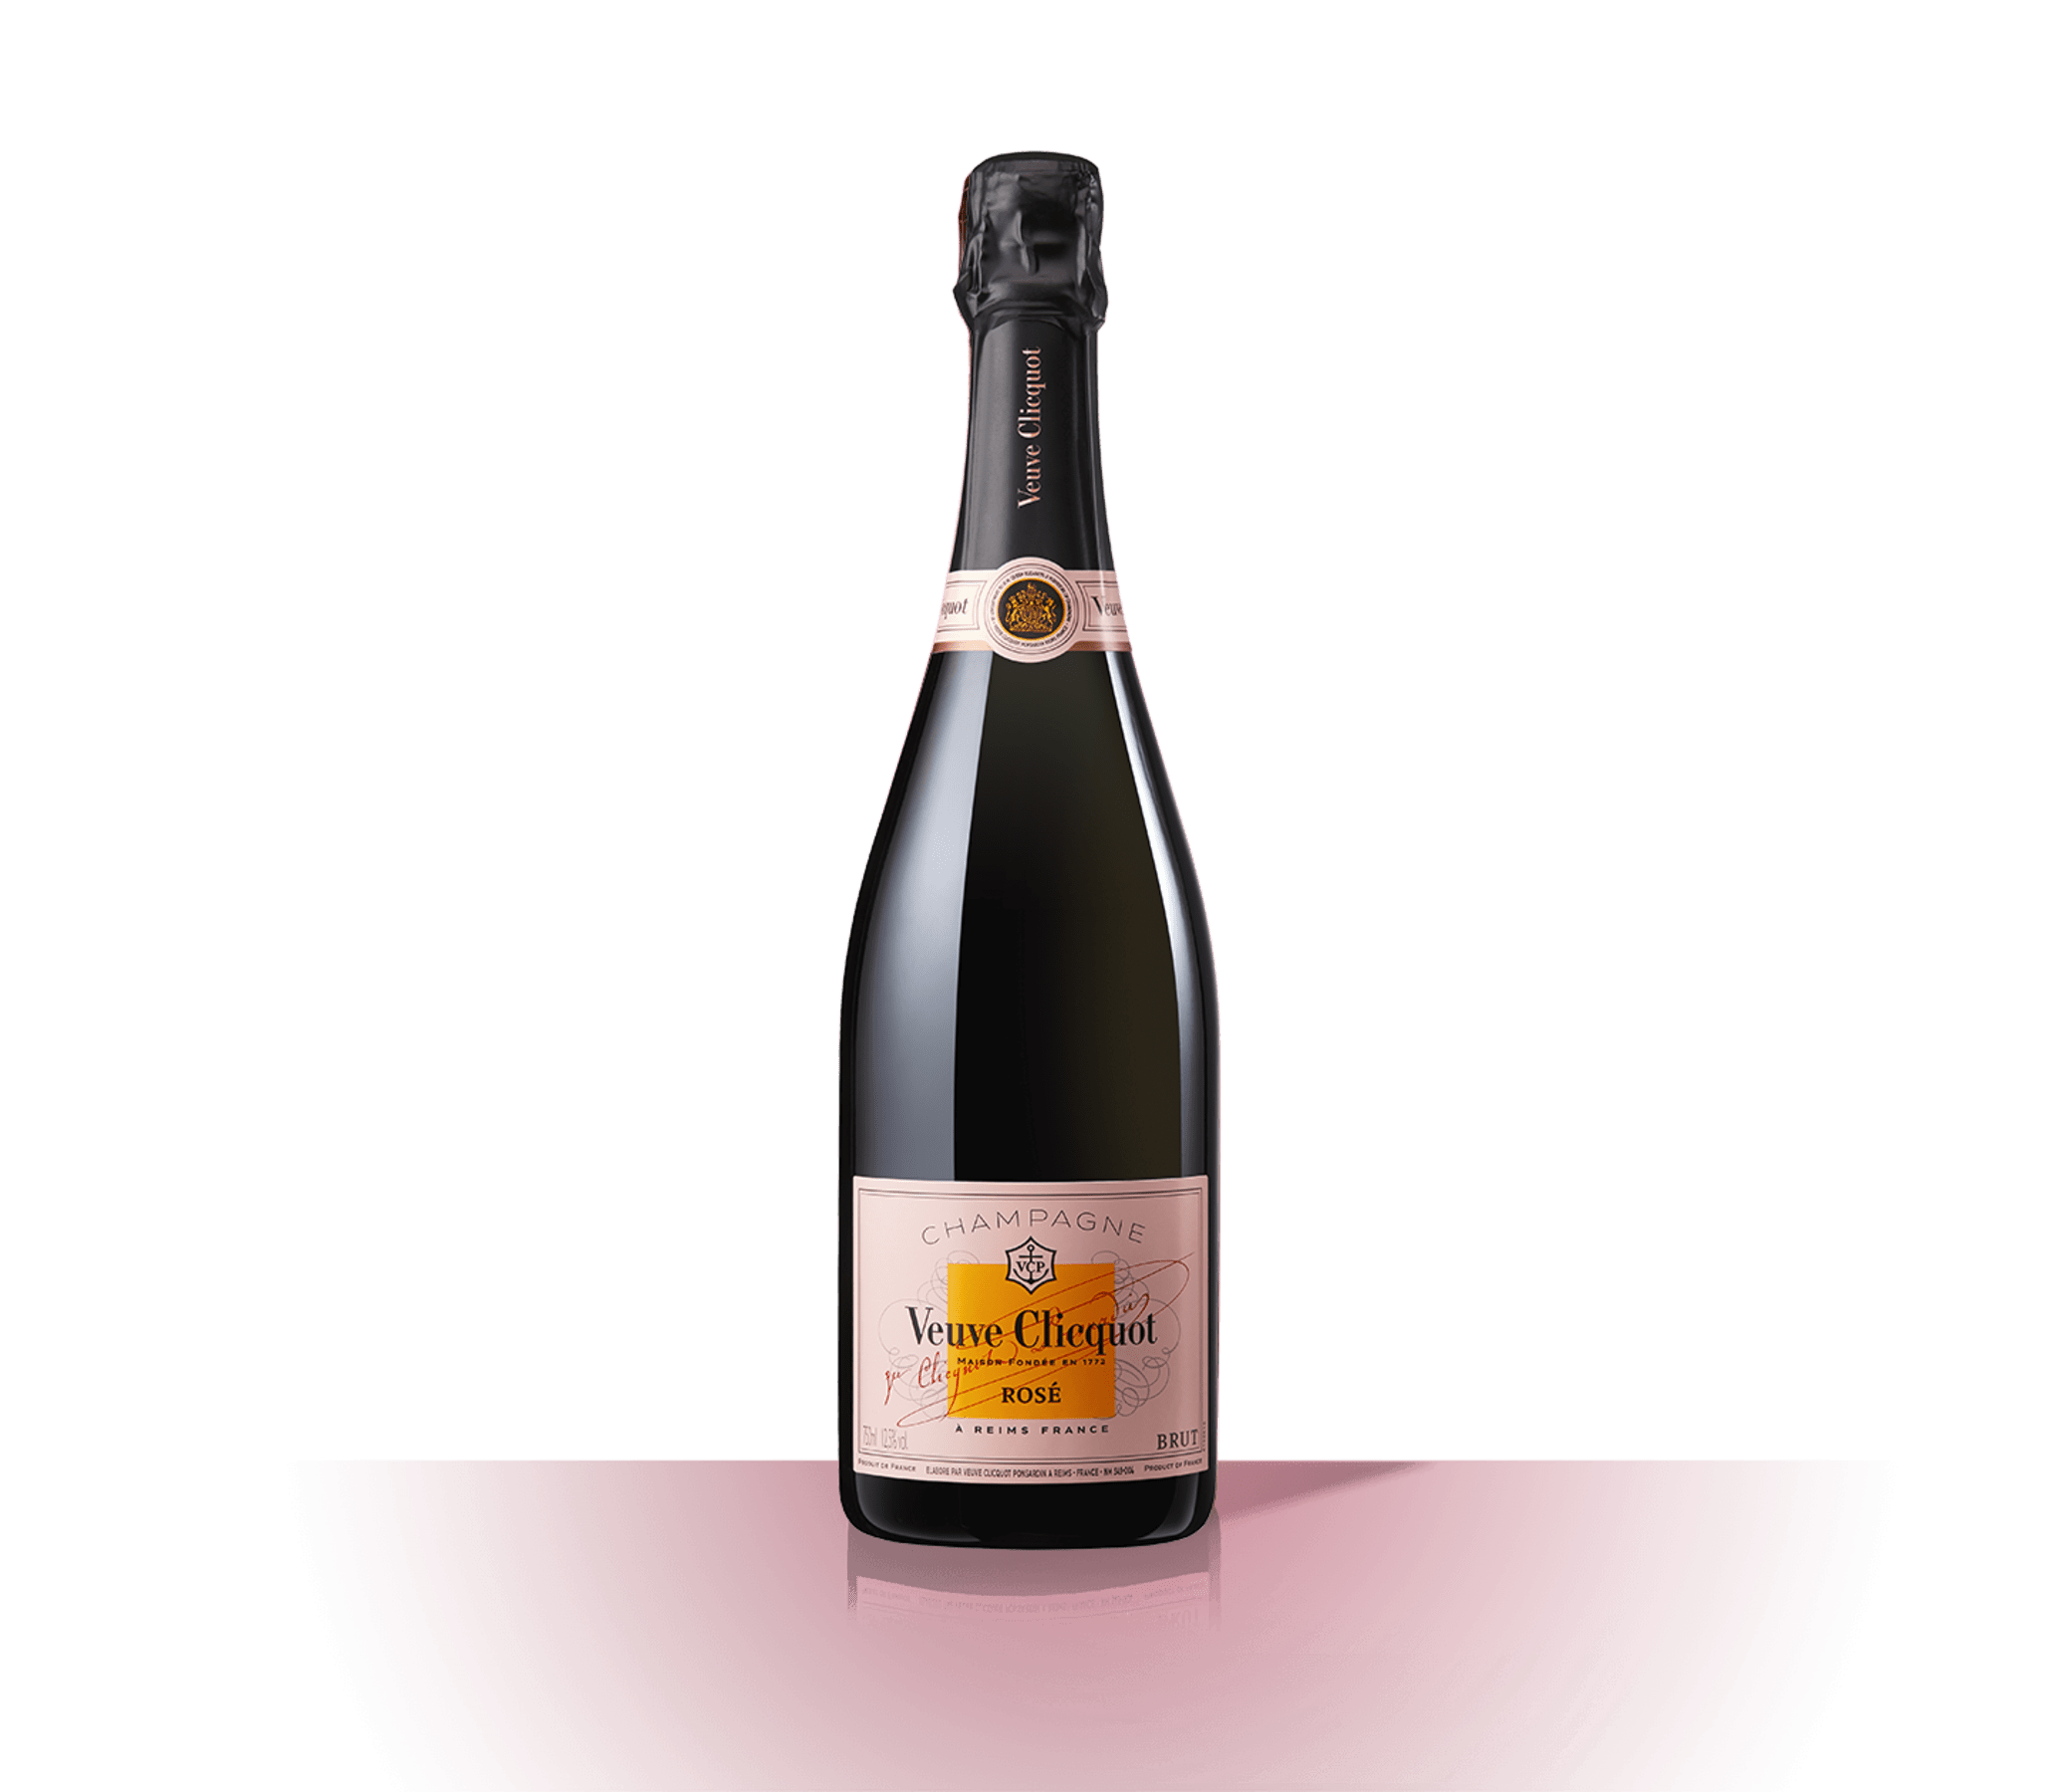 Bottle Veuve Clicquot Champagne Rosé